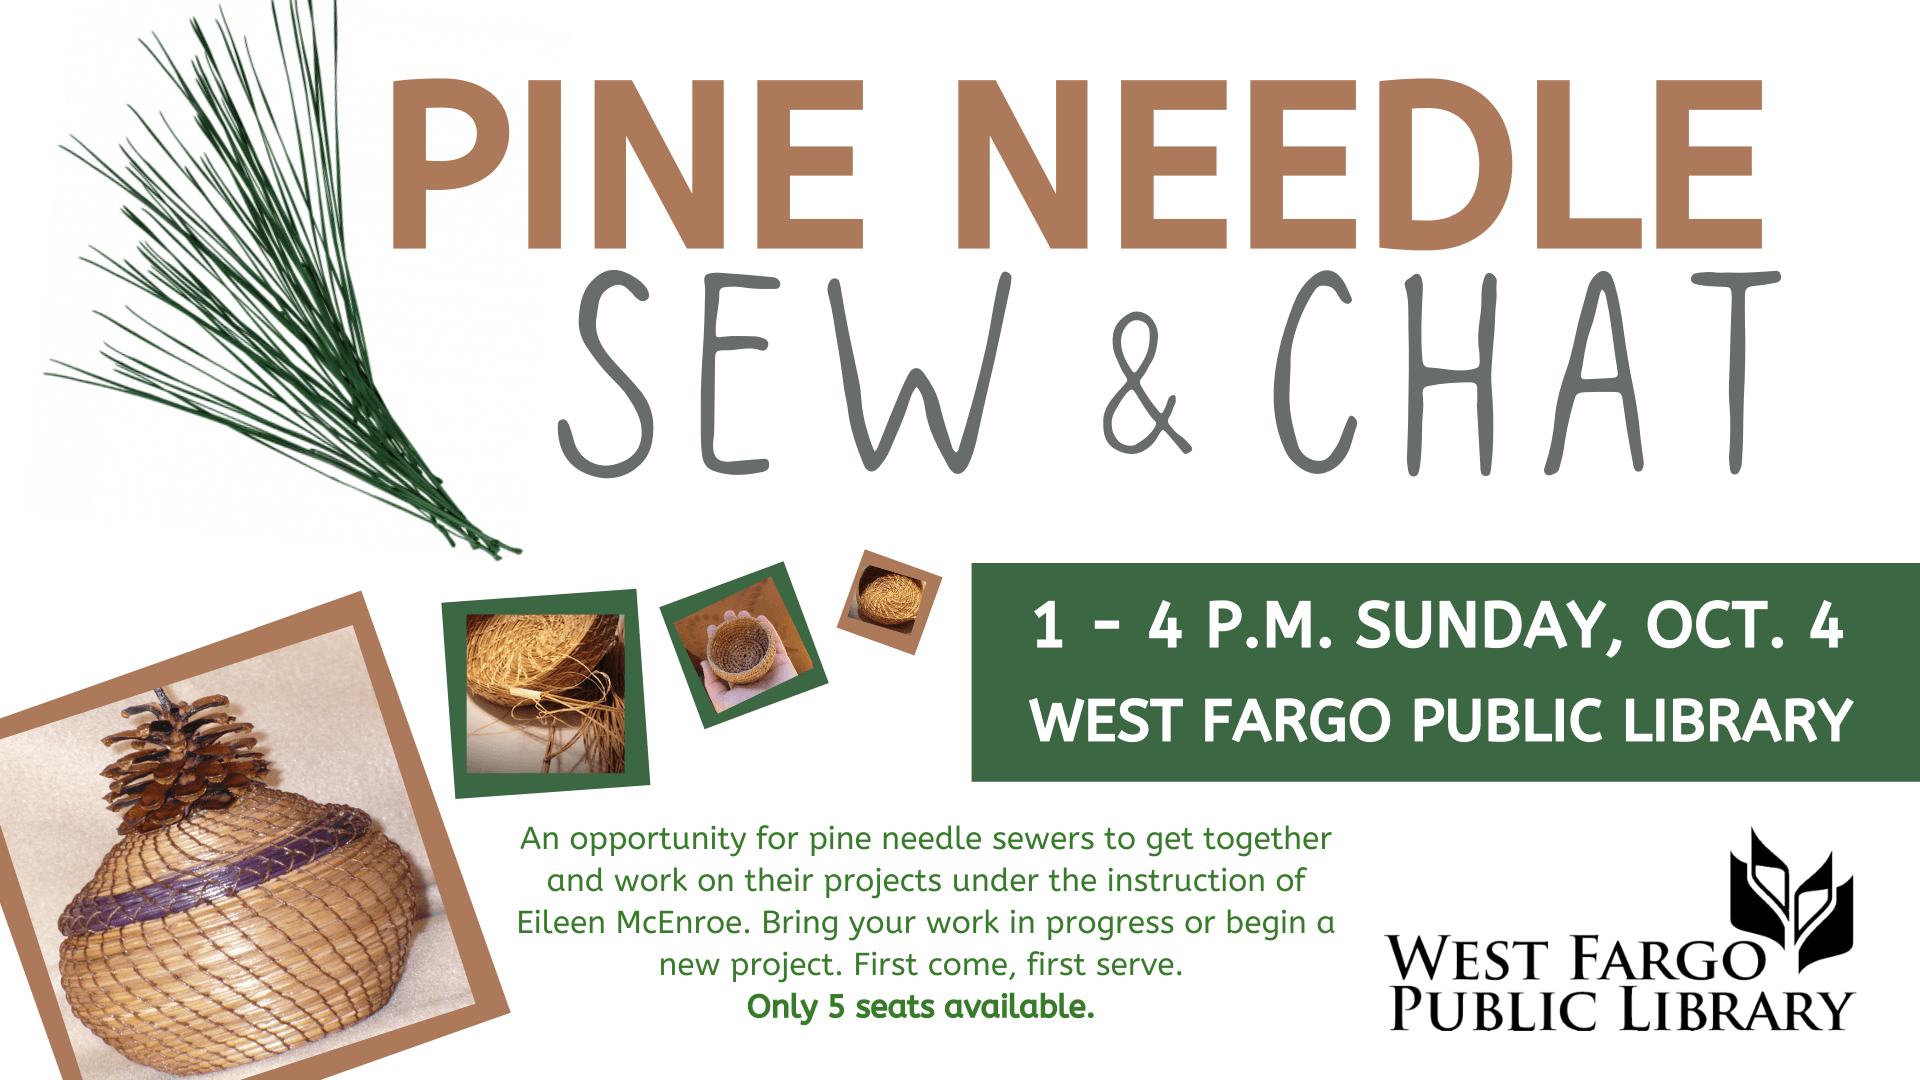 Pine Needle Sew and Chat